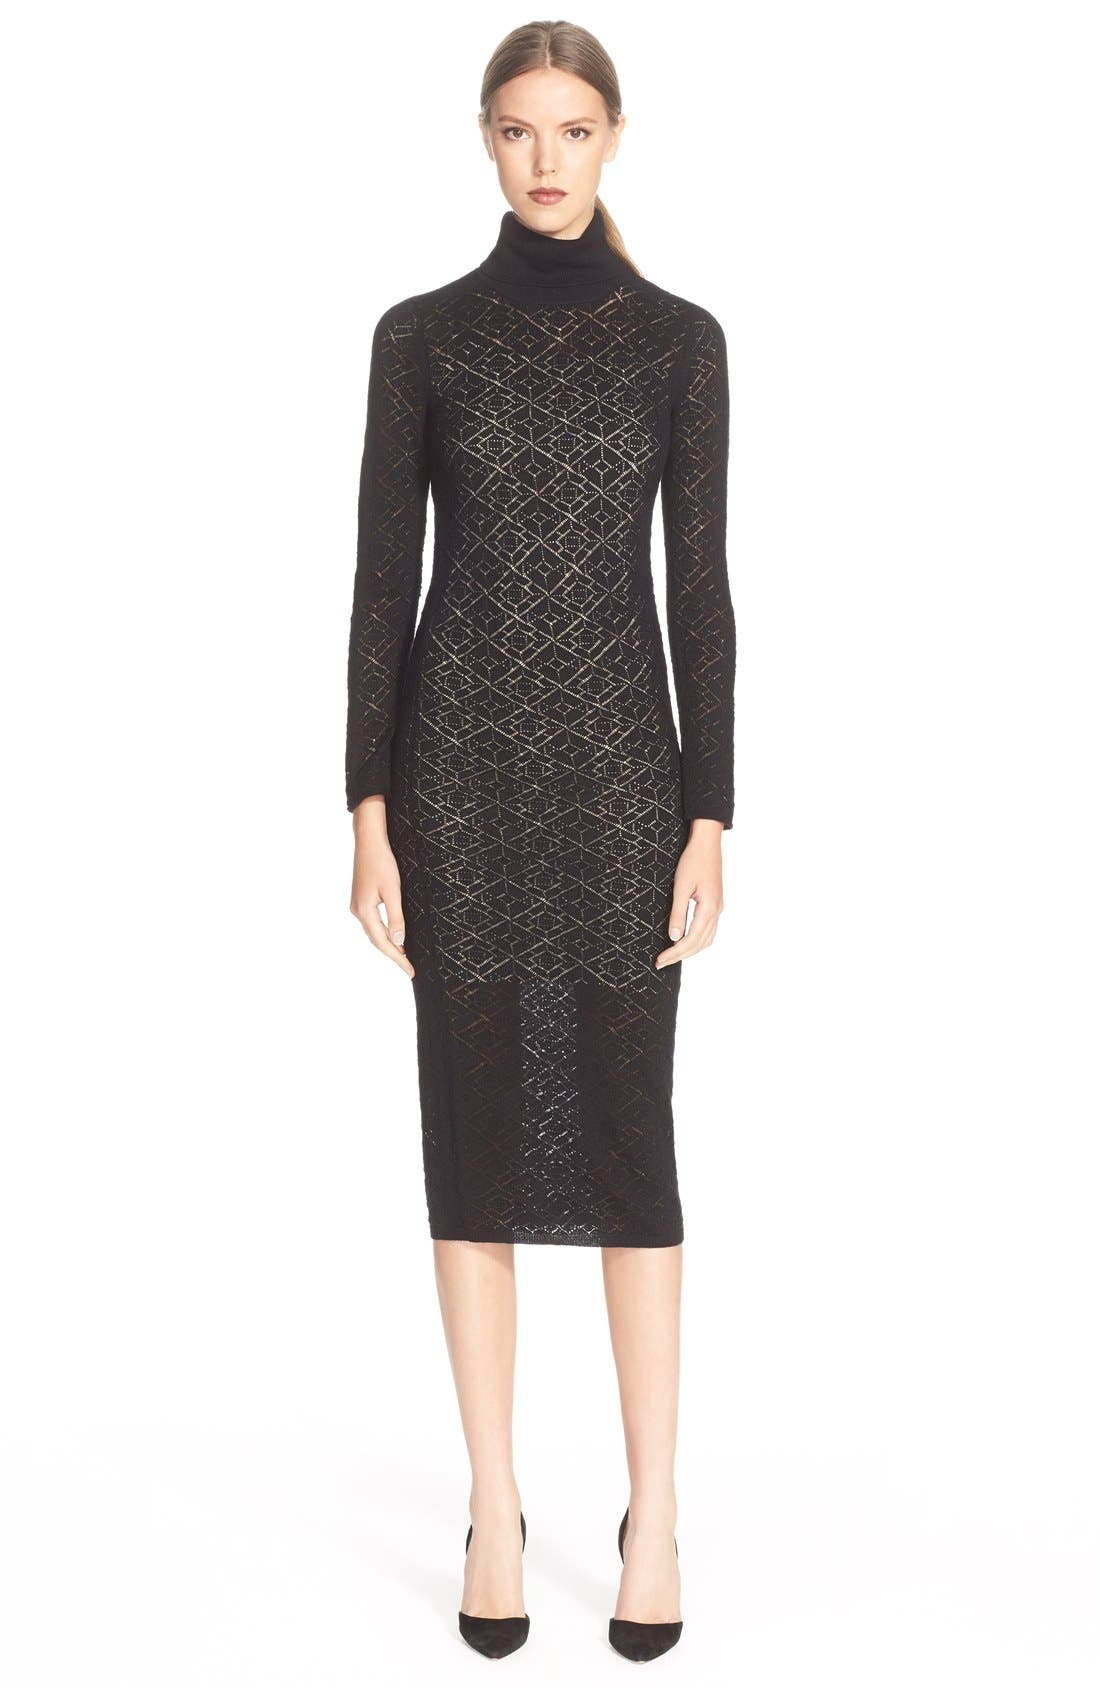 Alternate Image 1 Selected - Alice + Olivia 'Fergie' Turtleneck Body-Con Wool Dress